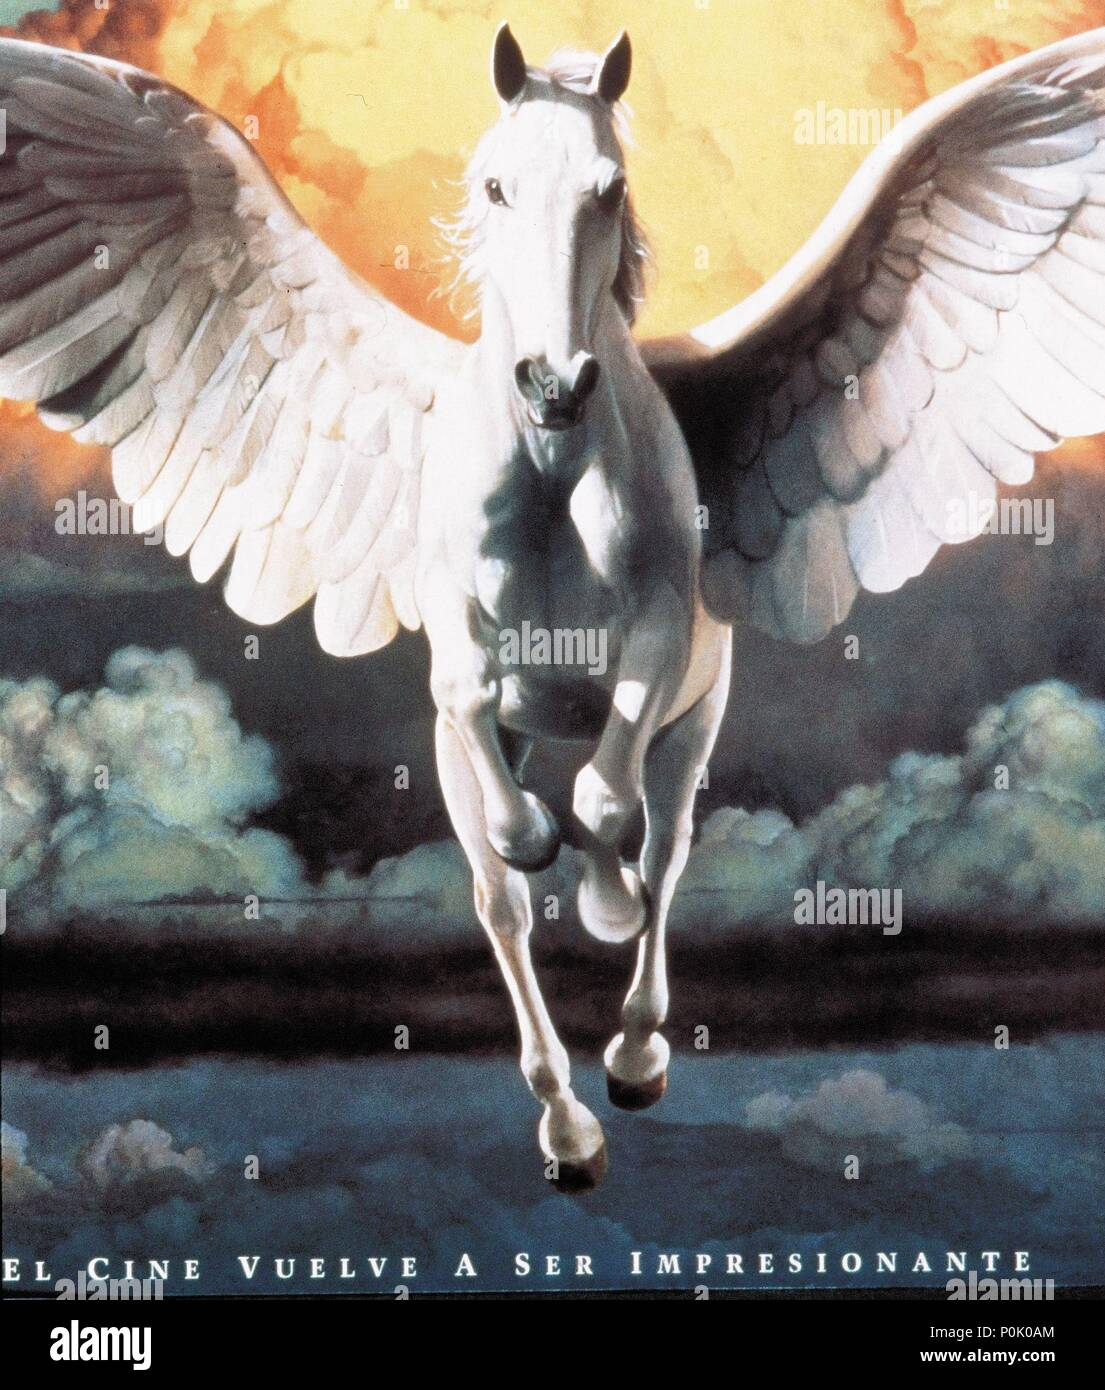 Description: The horse with wings from the Columbia Tristar Motion Picture Group logo..  Original Film Title: FILM HISTORY: COLUMBIA STUDIOS.  English Title: FILM HISTORY: COLUMBIA STUDIOS. Stock Photo